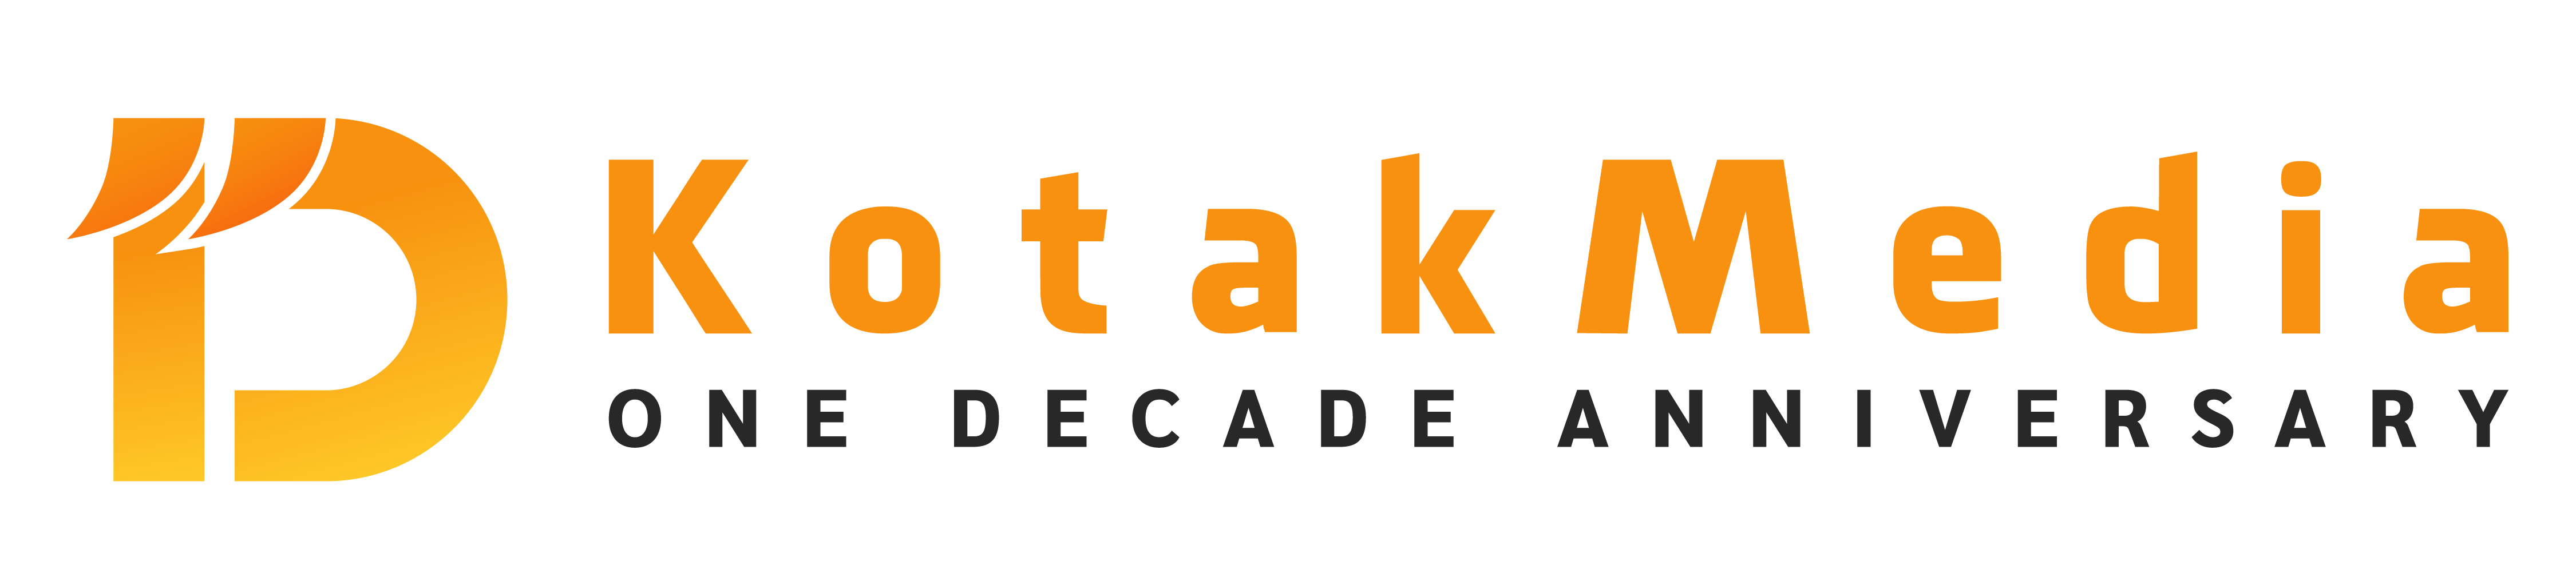 Kotakmedia One Decade